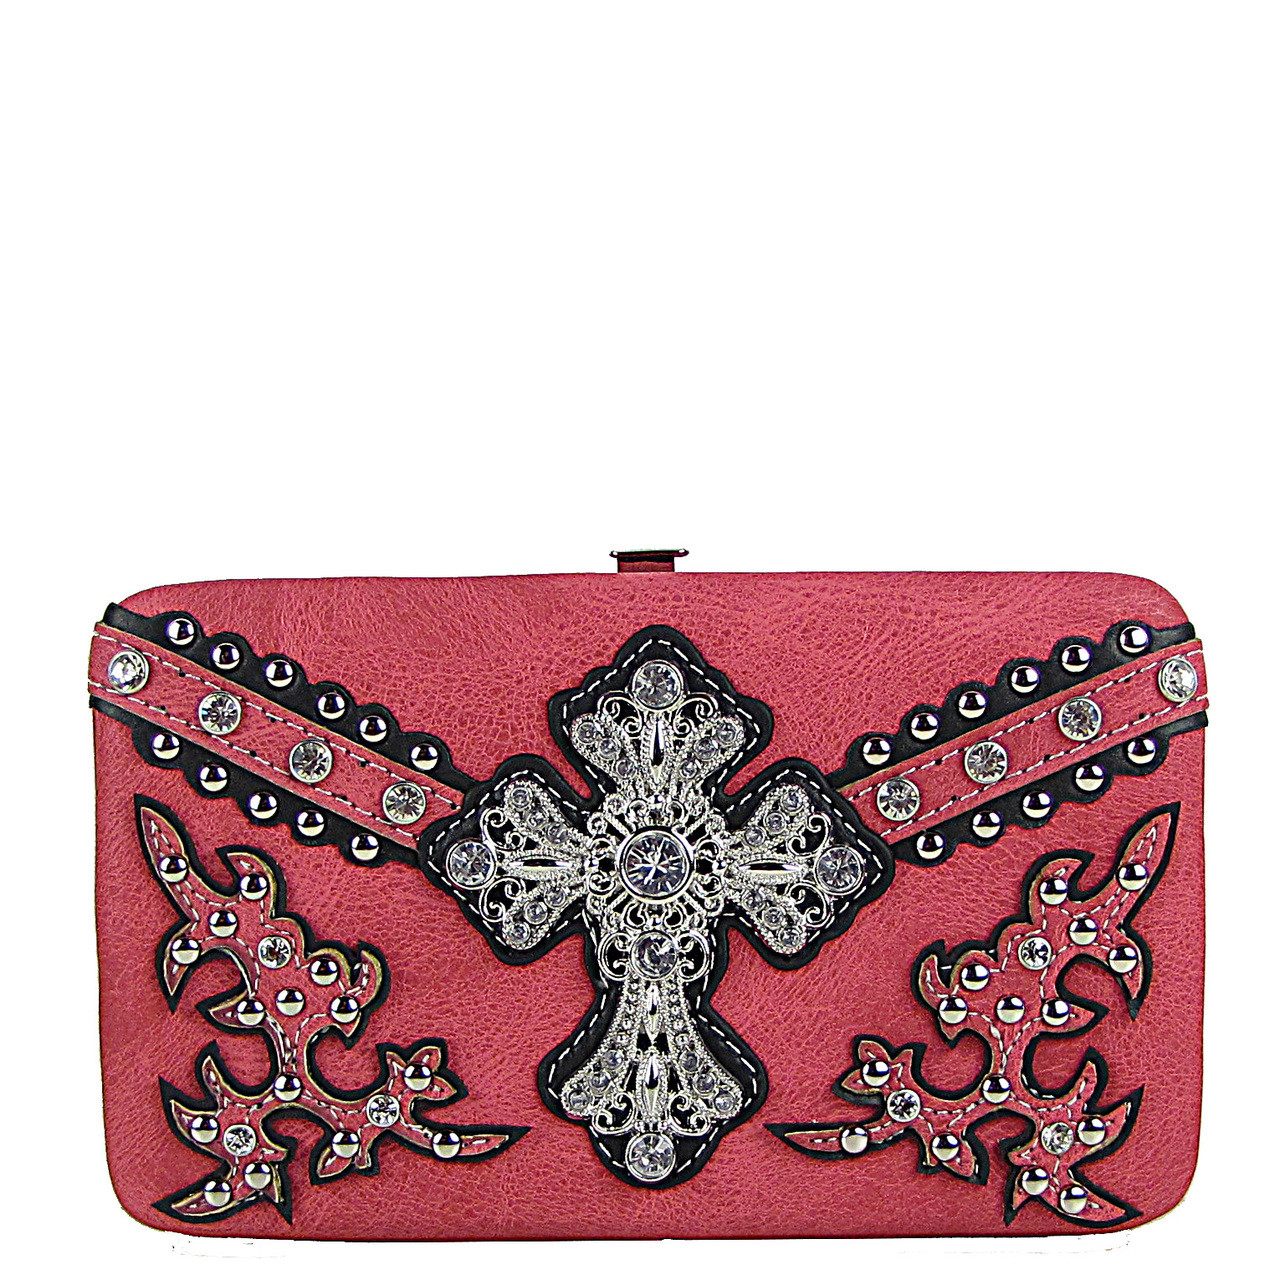 HOT PINK STUDDED WESTERN RHINESTONE CROSS FLAT THICK WALLET